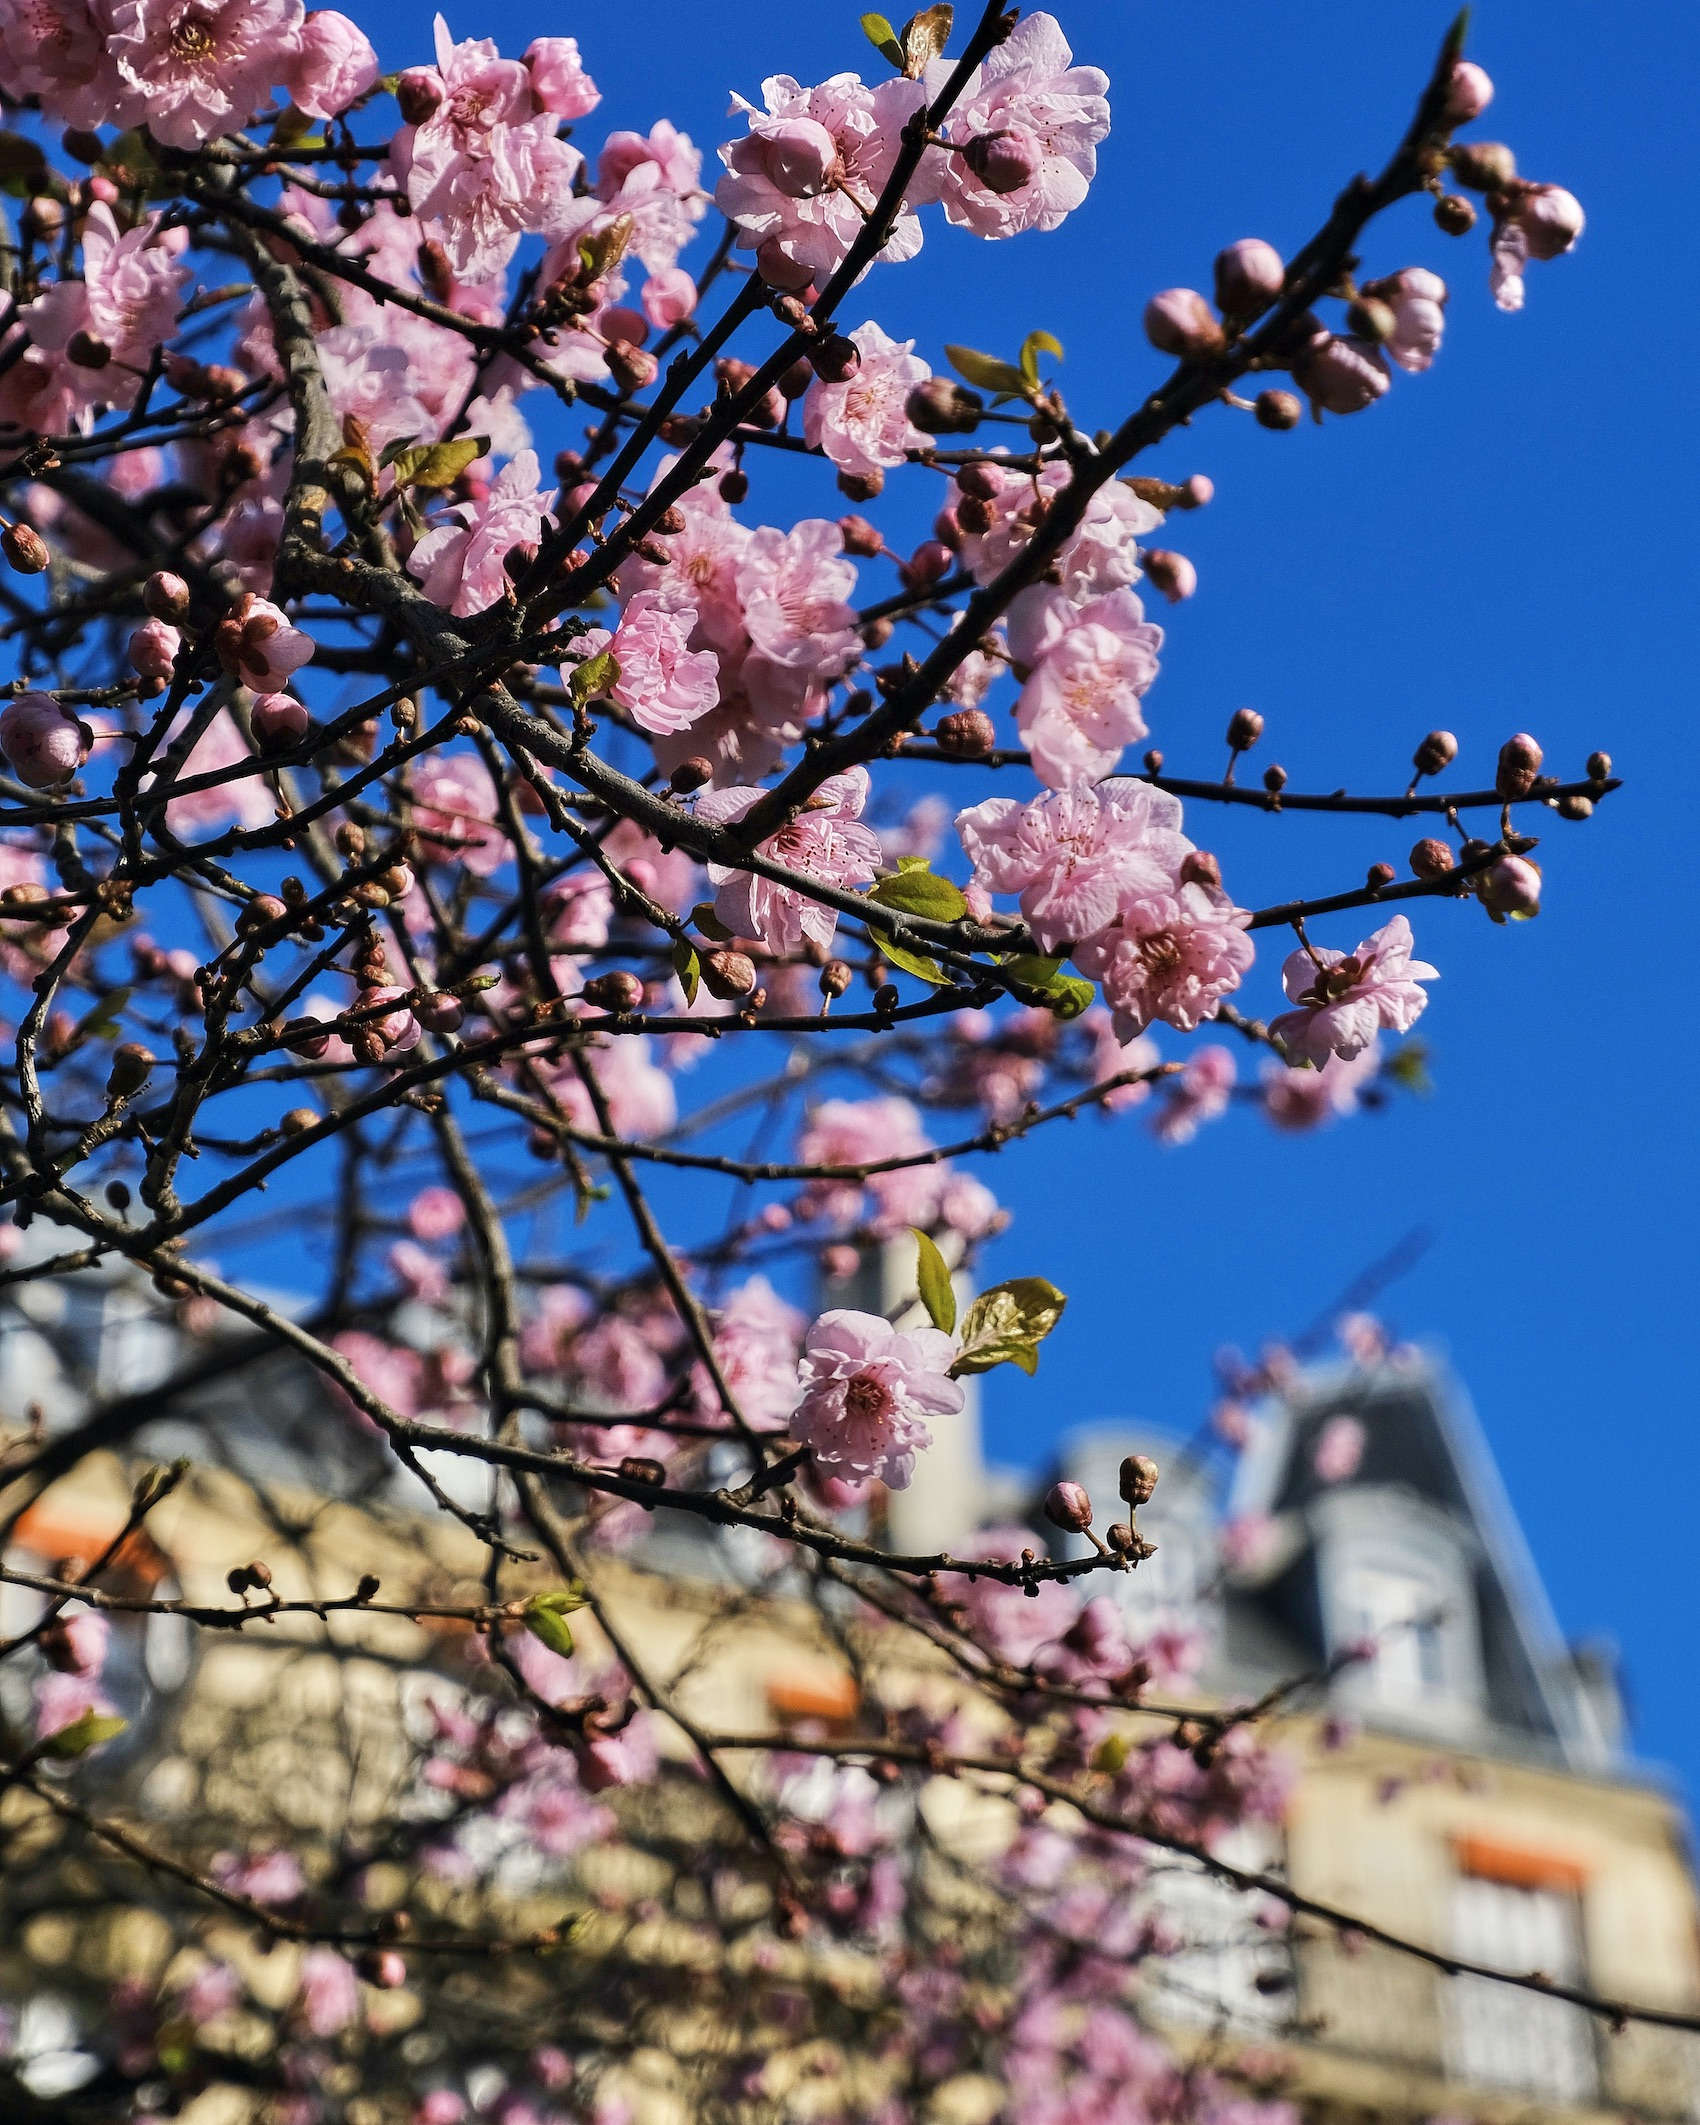 Earliest Spring Flowers in Paris at Square Boucicaut